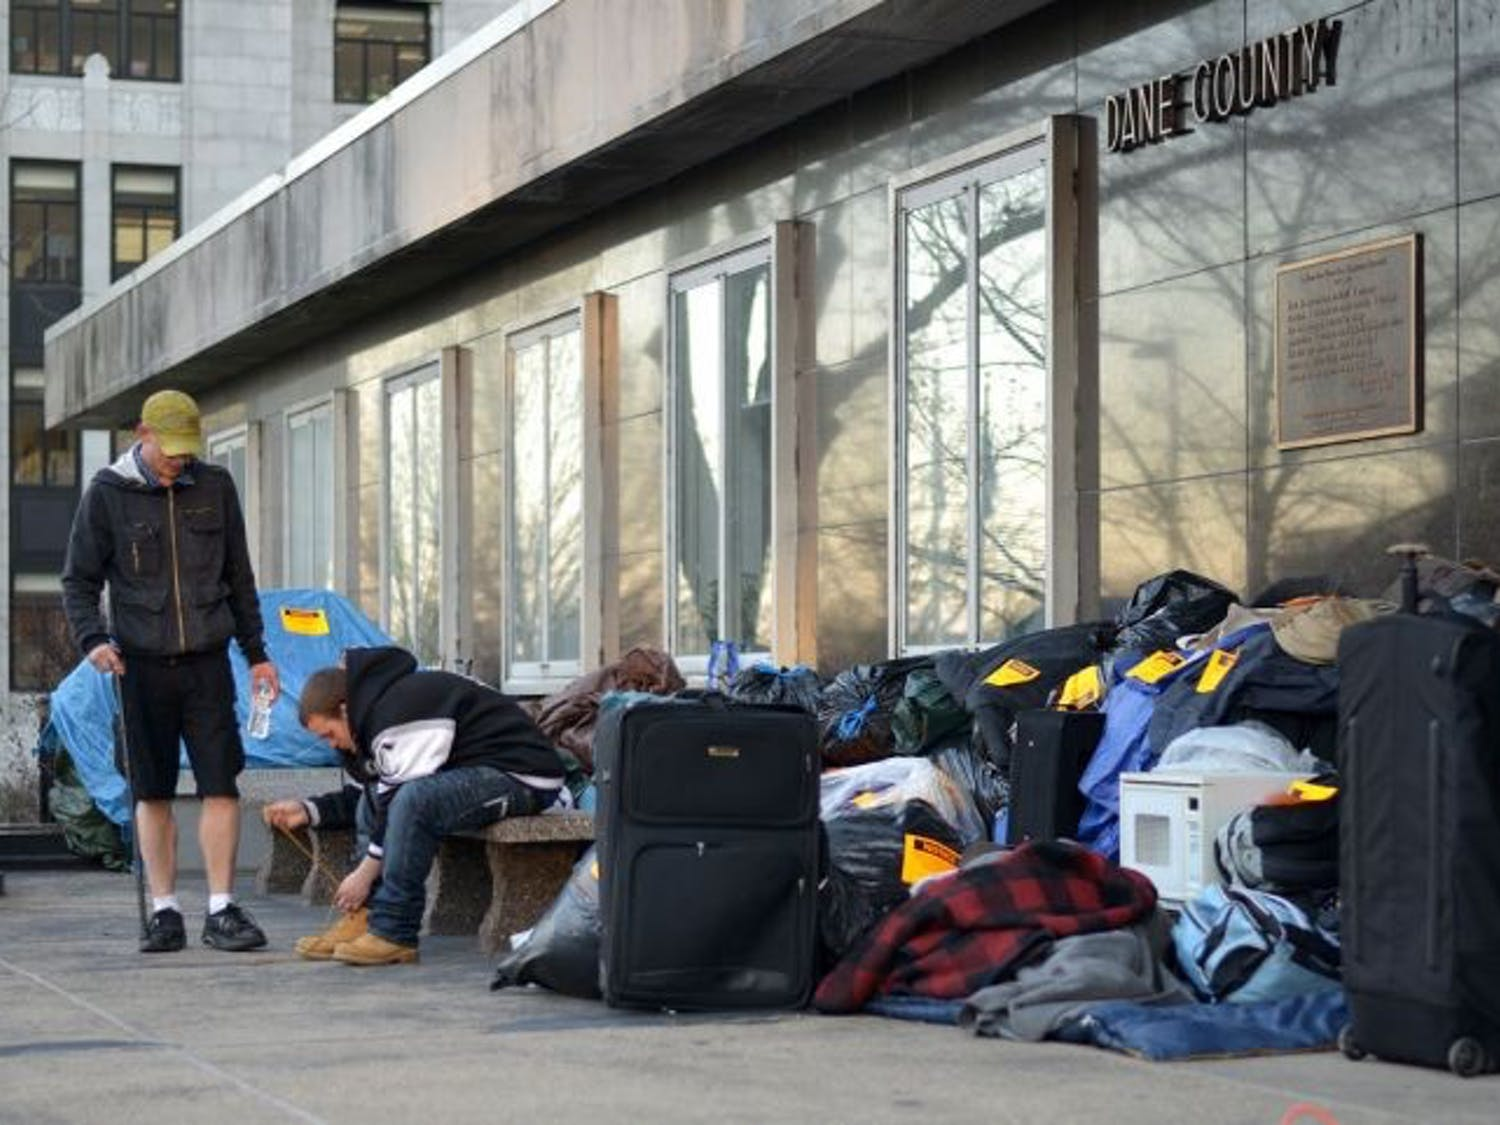 The state's Interagency Council of Homelessness released a plan outlining their efforts to combat homelessness across Wisconsin.